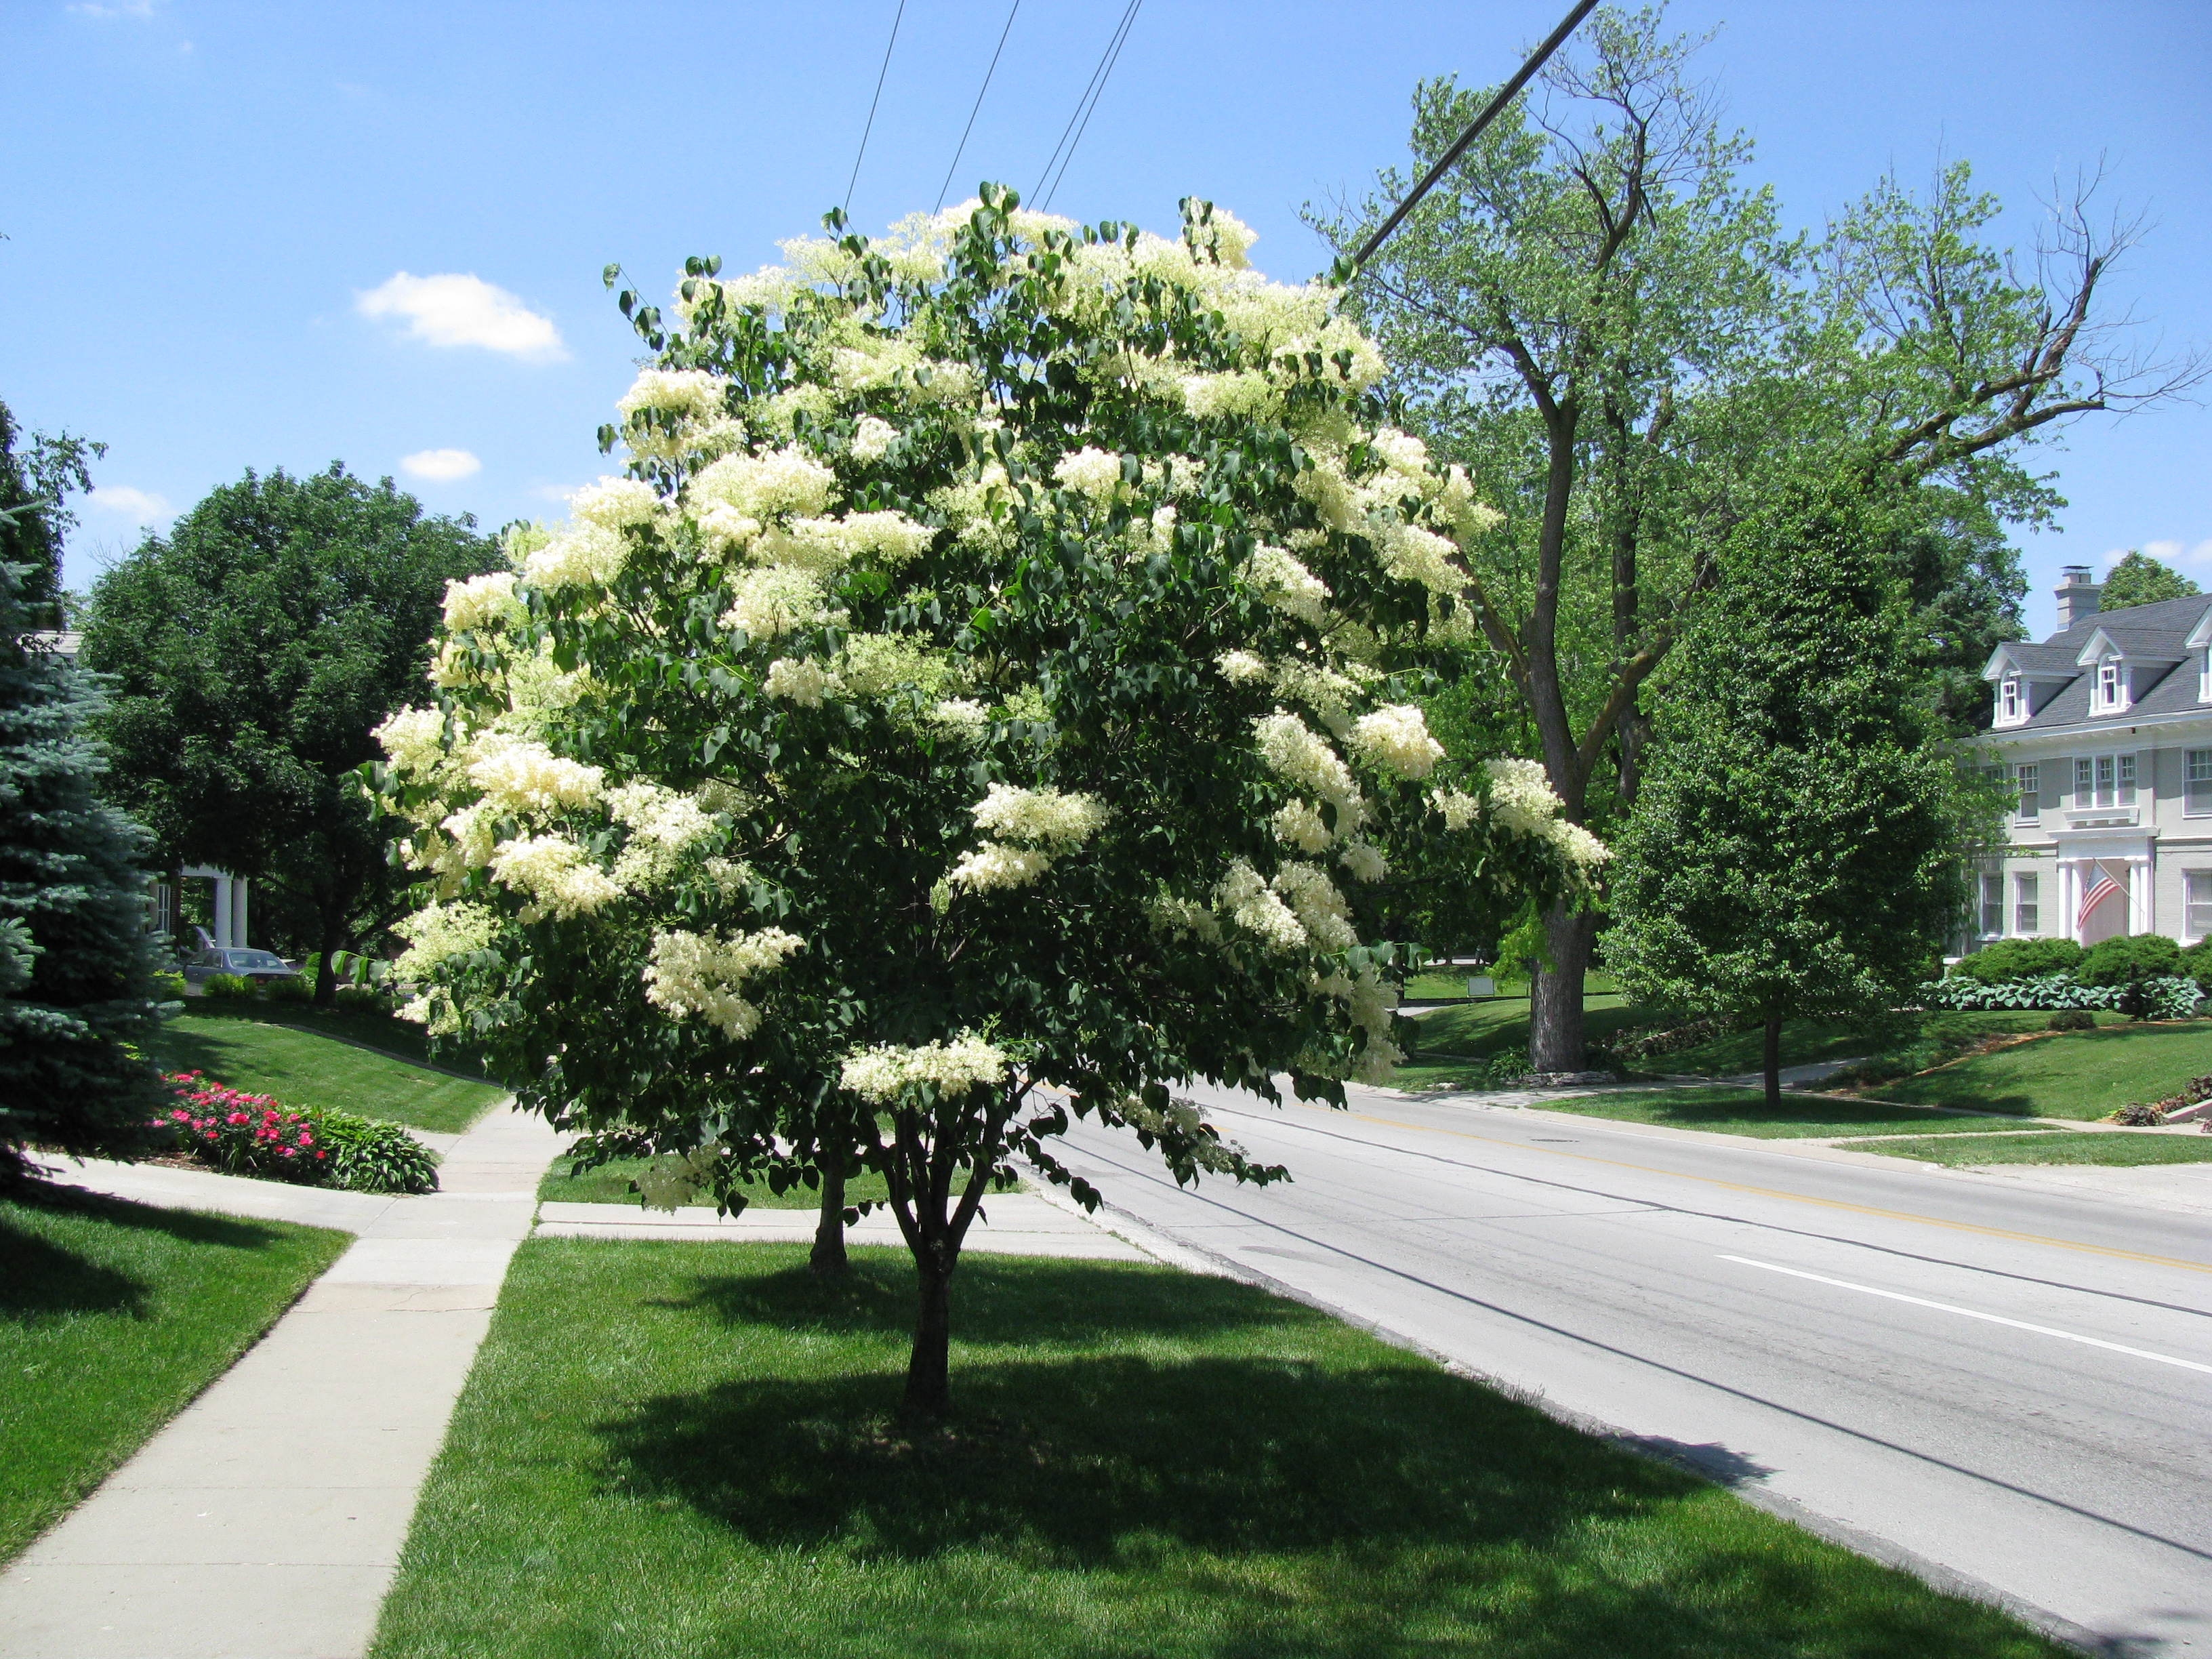 Japanese Tree Lilac, Nebraska Extension Acreage Insights May 2017. http://acreage.unl.edu/enews-may-2017